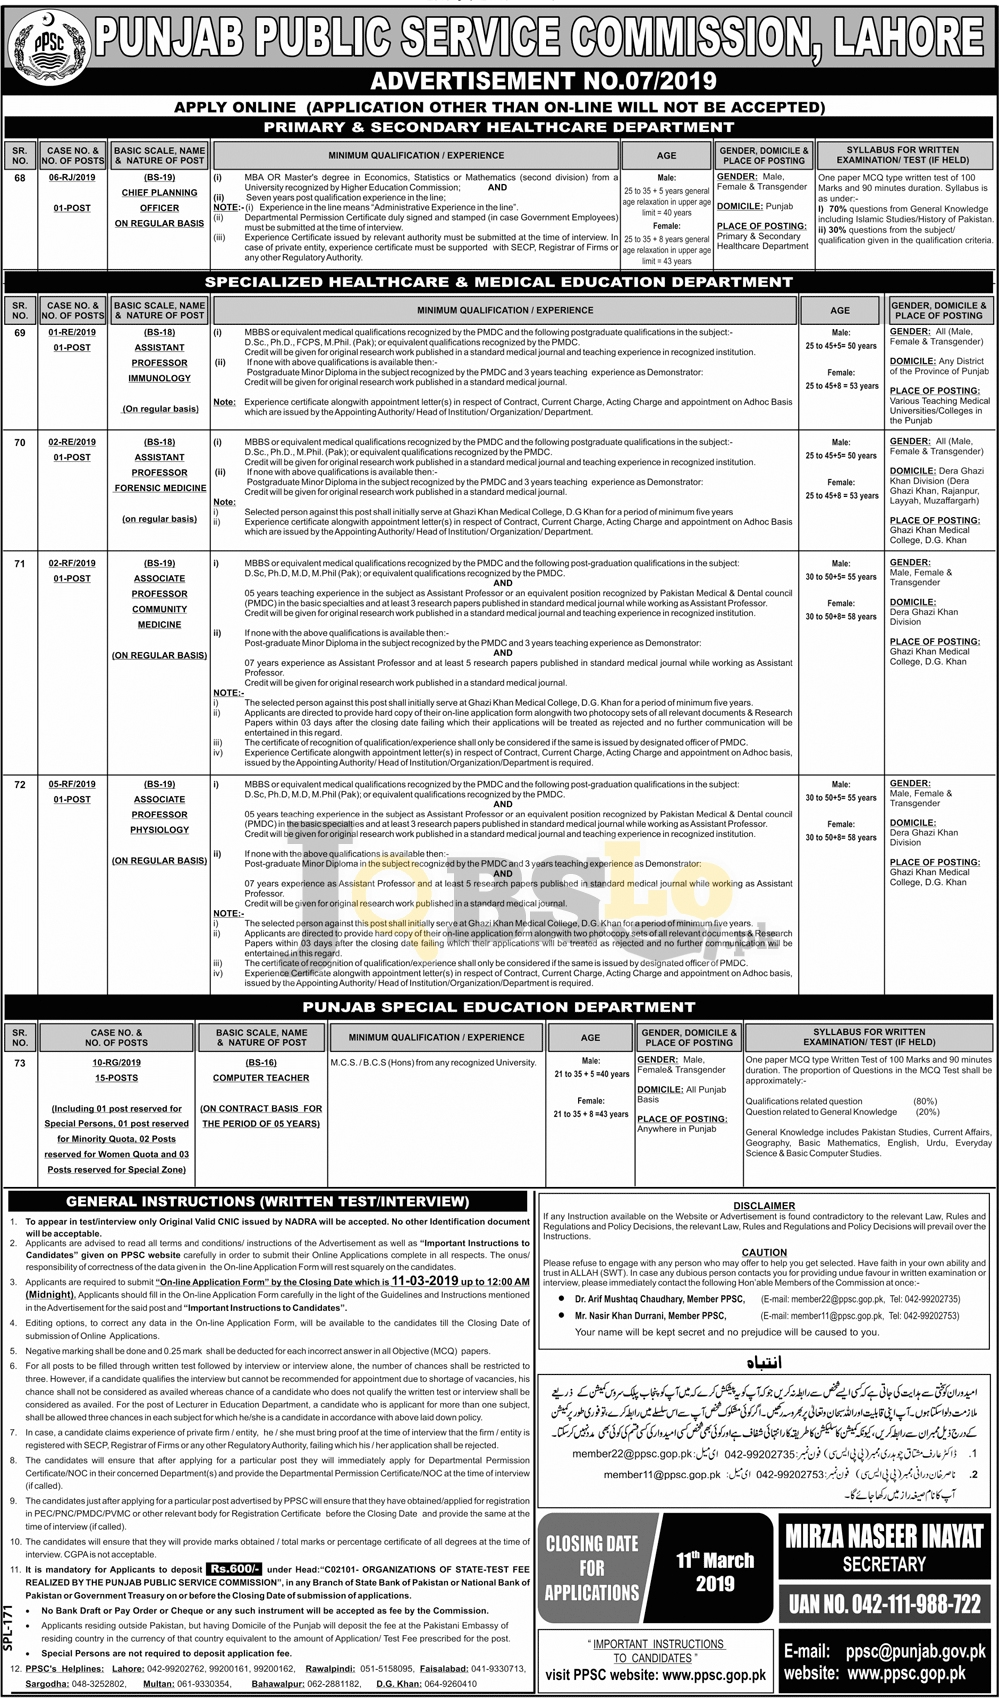 PPSC Jobs 2019 Apply Online | Punjab Public Service Commission Latest Advertisement